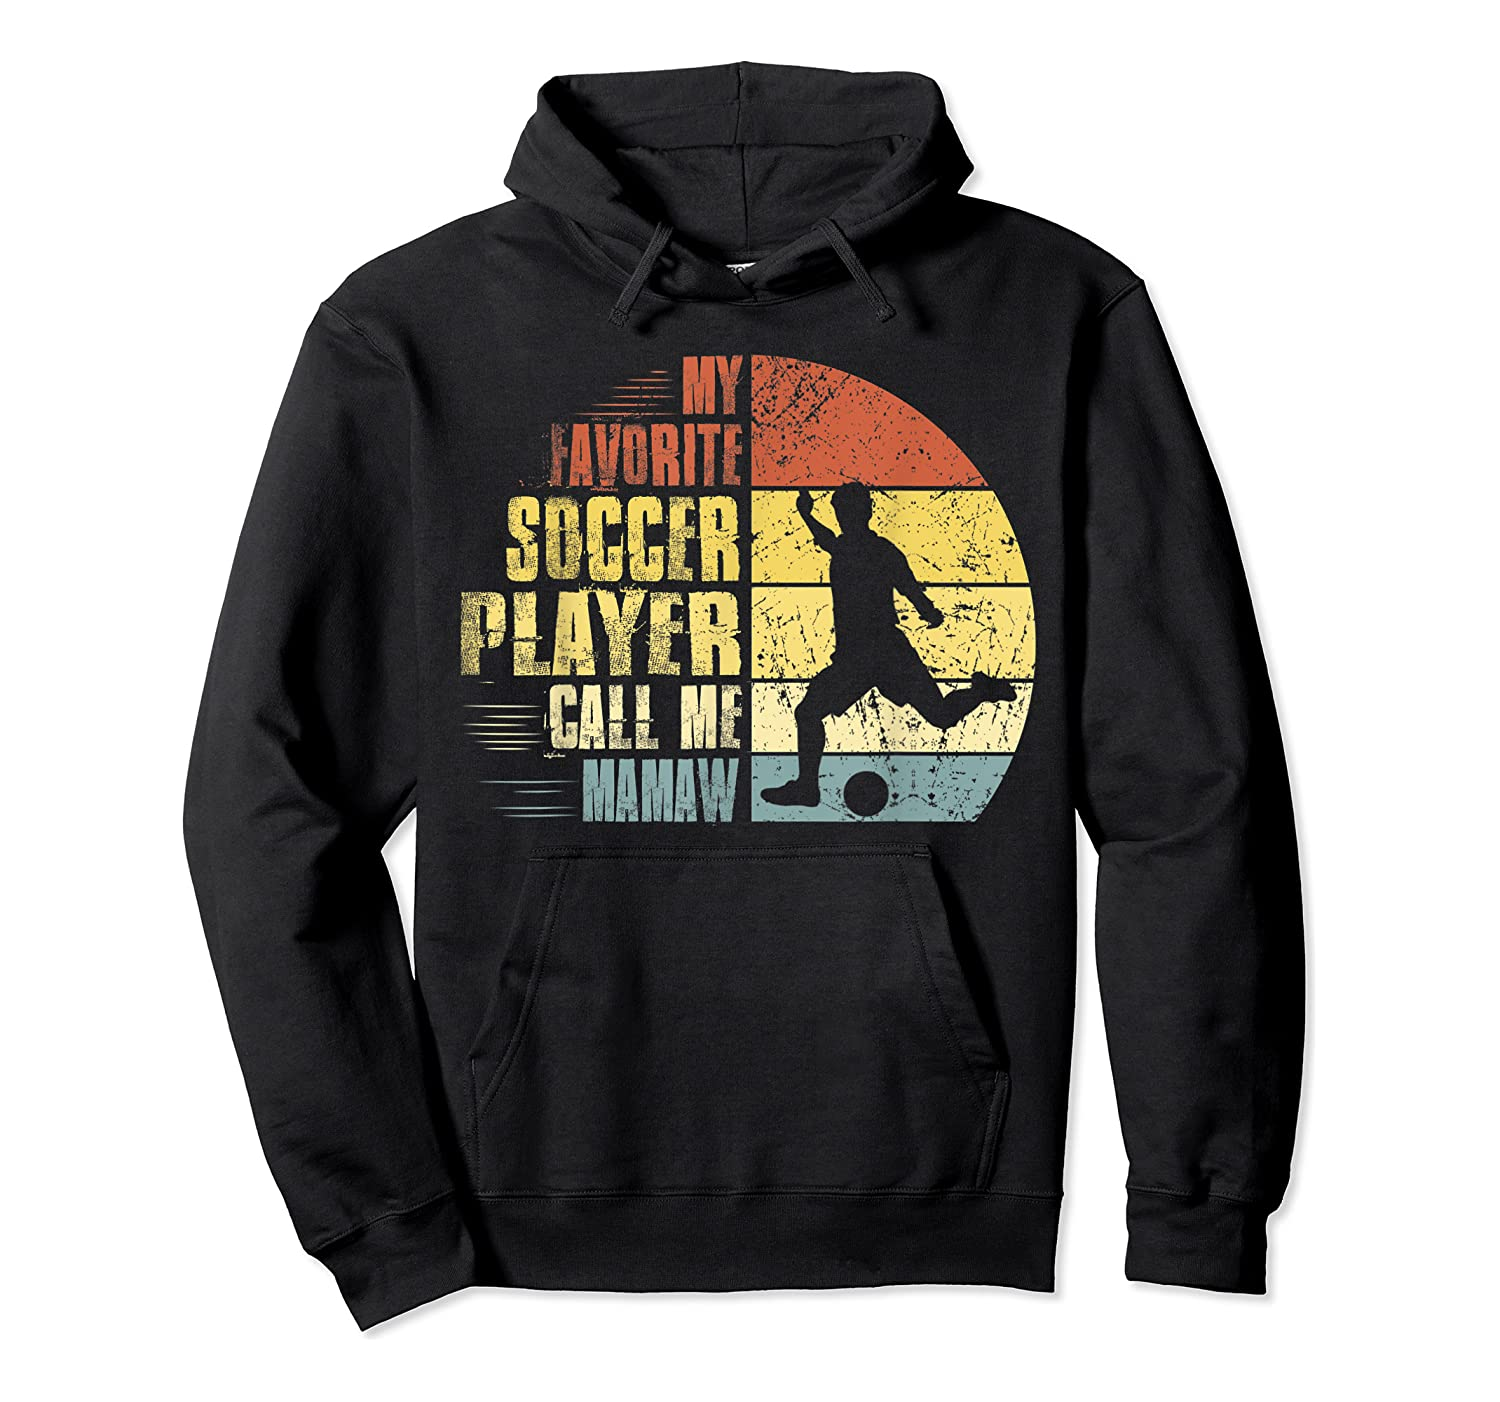 Vintage My Favorite Soccer Player Calls Me Mamaw Shirts Unisex Pullover Hoodie